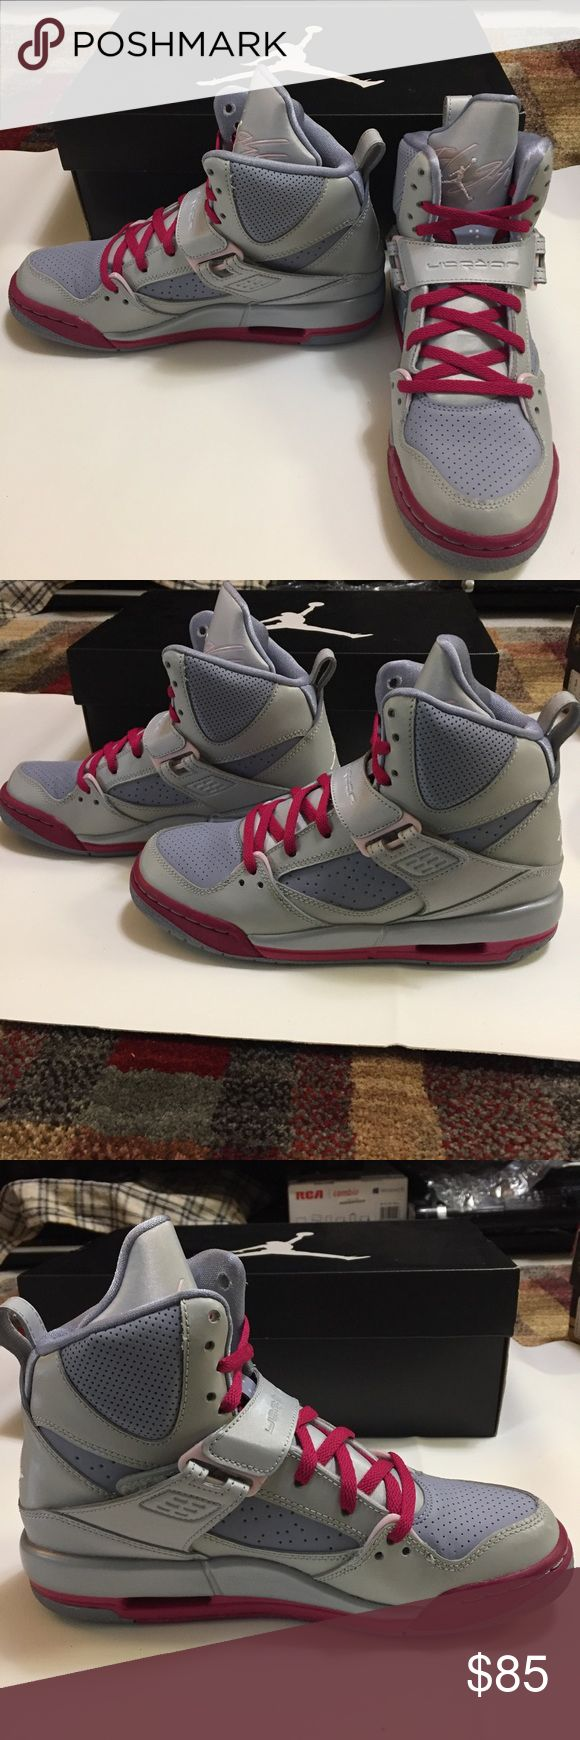 Jordan Flight 45 High GS- Girls Girls Jordan Flight 45 High GS which have only been worn once. Model: 524864-009. On the right pair, there are 2 thin black marks. Size UK 5, US 5.5 y. My size is a 6 and they fit me. Air Jordan Shoes